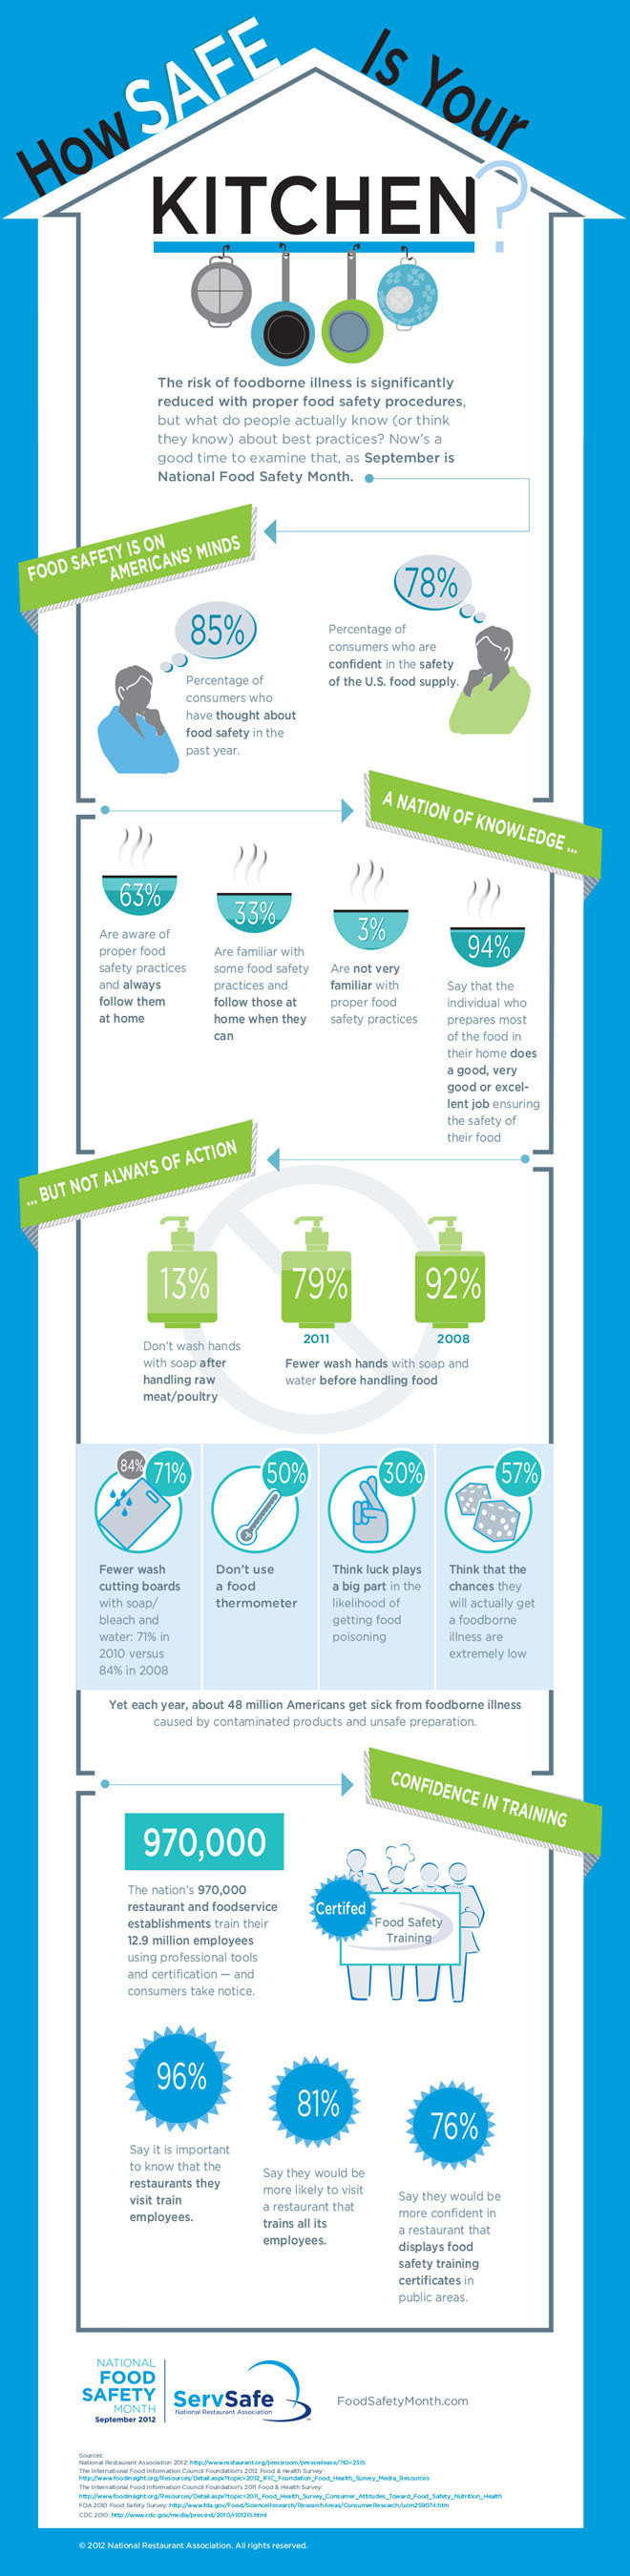 How safe is your kitchen? National Restaurant Association's infographic for National Food Safety Month 2012.  (PRNewsFoto/National Restaurant Association)